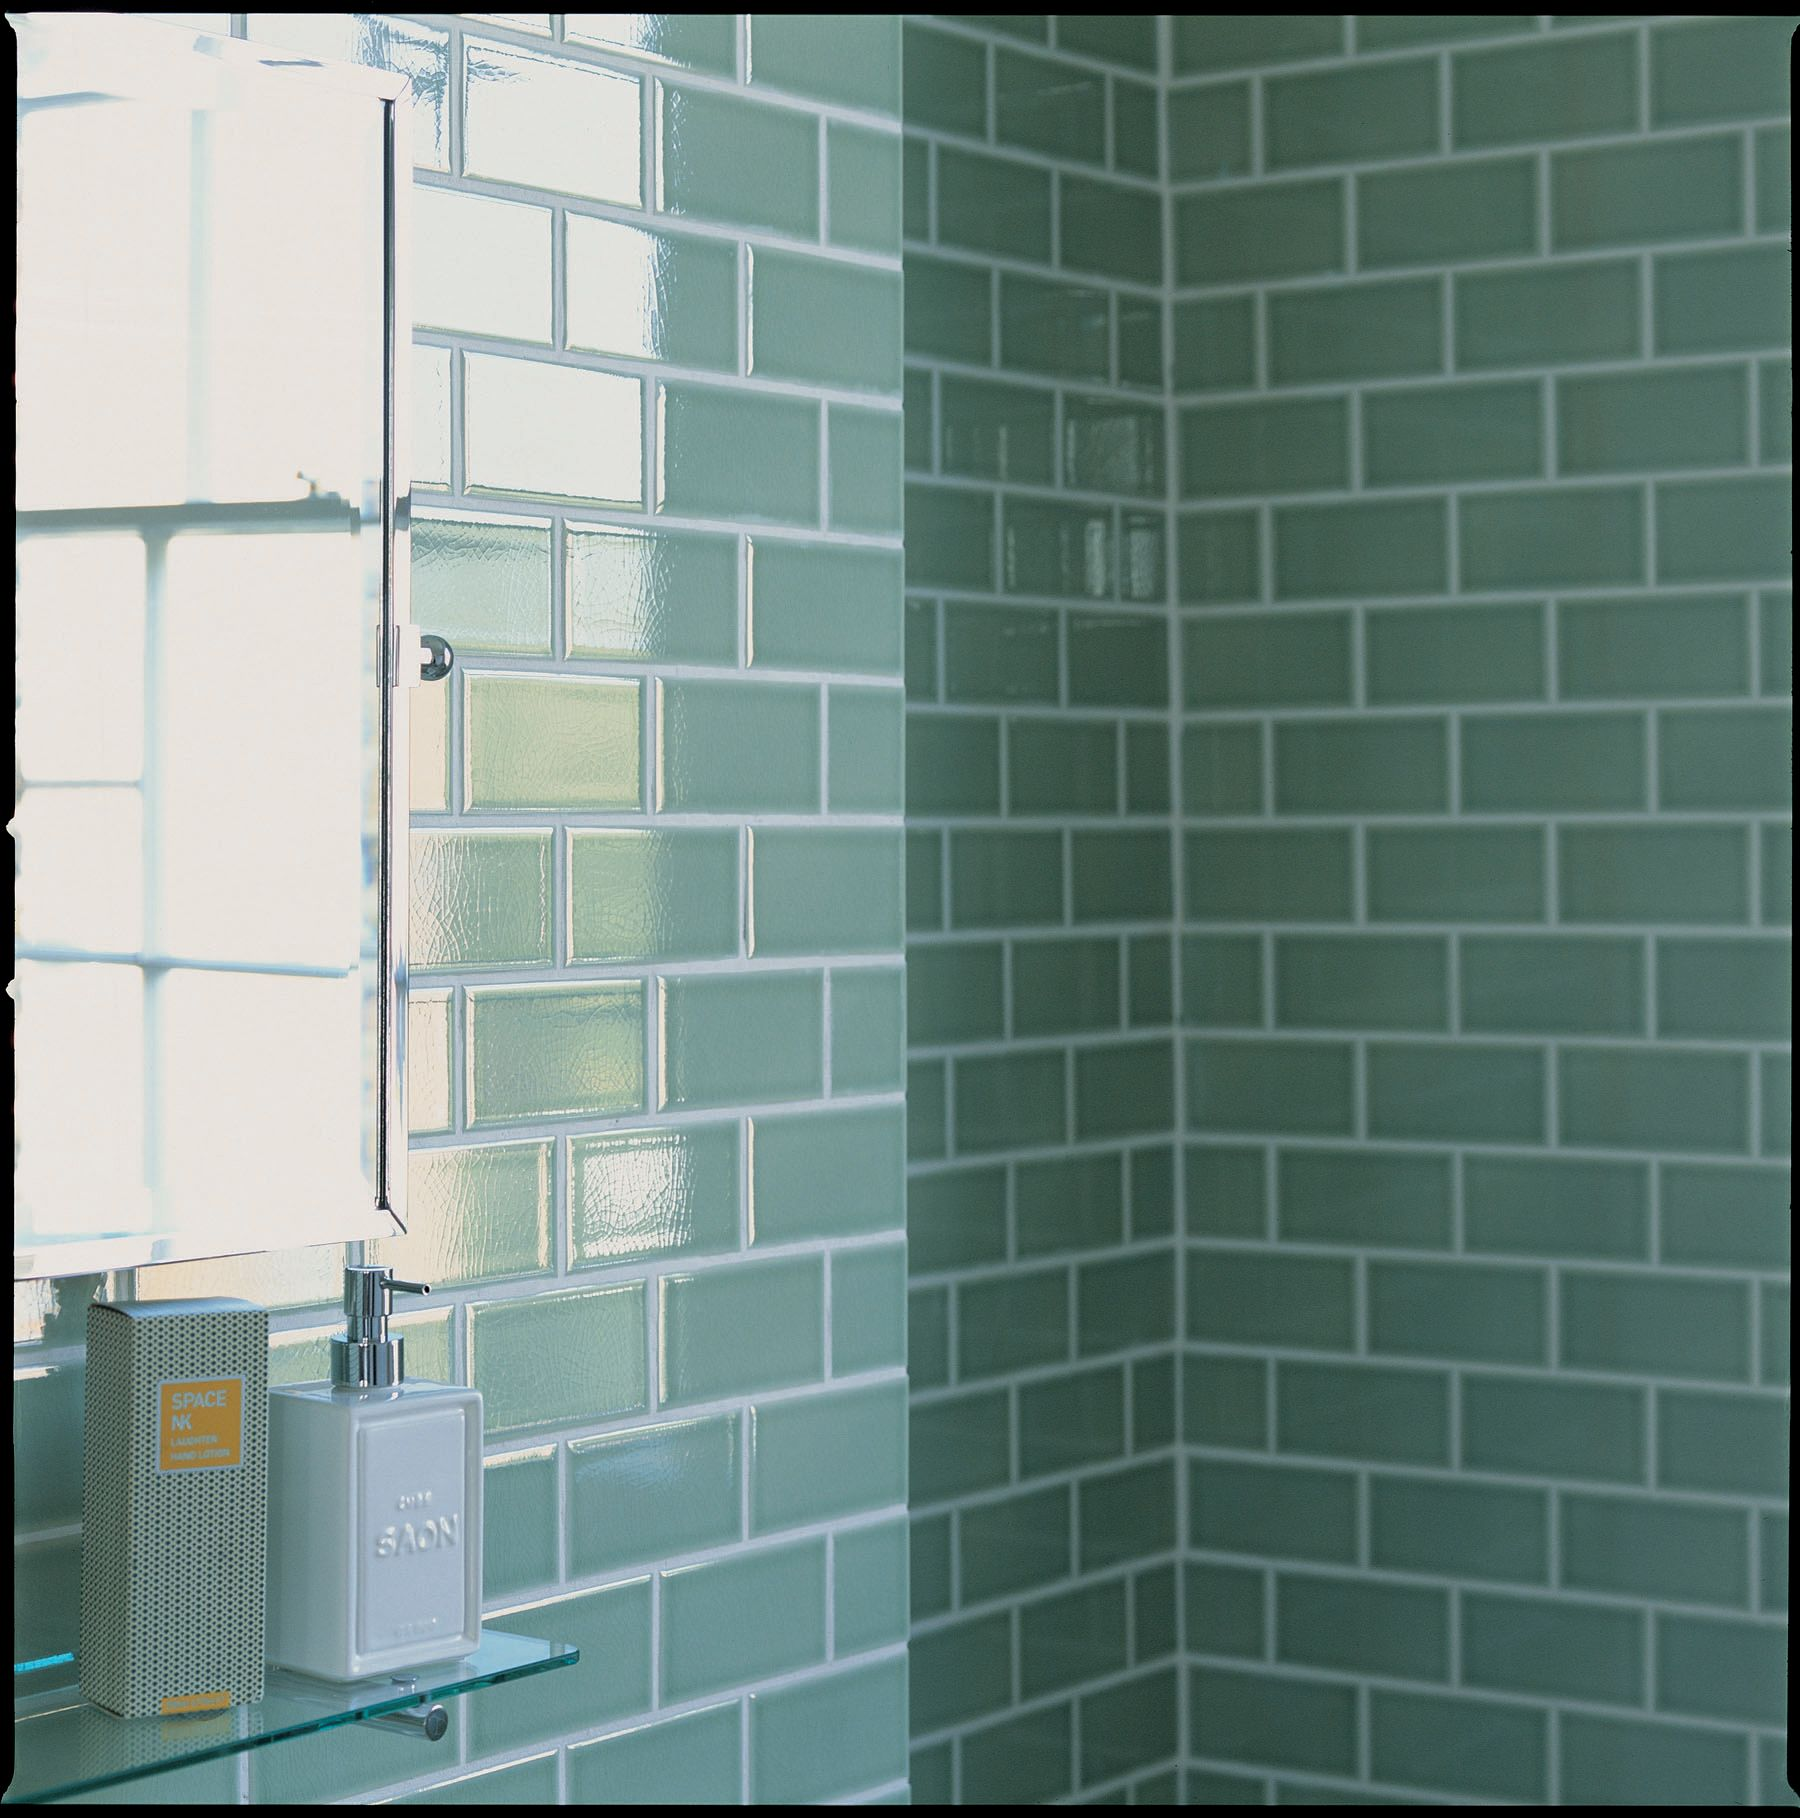 30 great pictures and ideas of old fashioned bathroom tile 30 great pictures and ideas of old fashioned bathroom tile designes dailygadgetfo Images